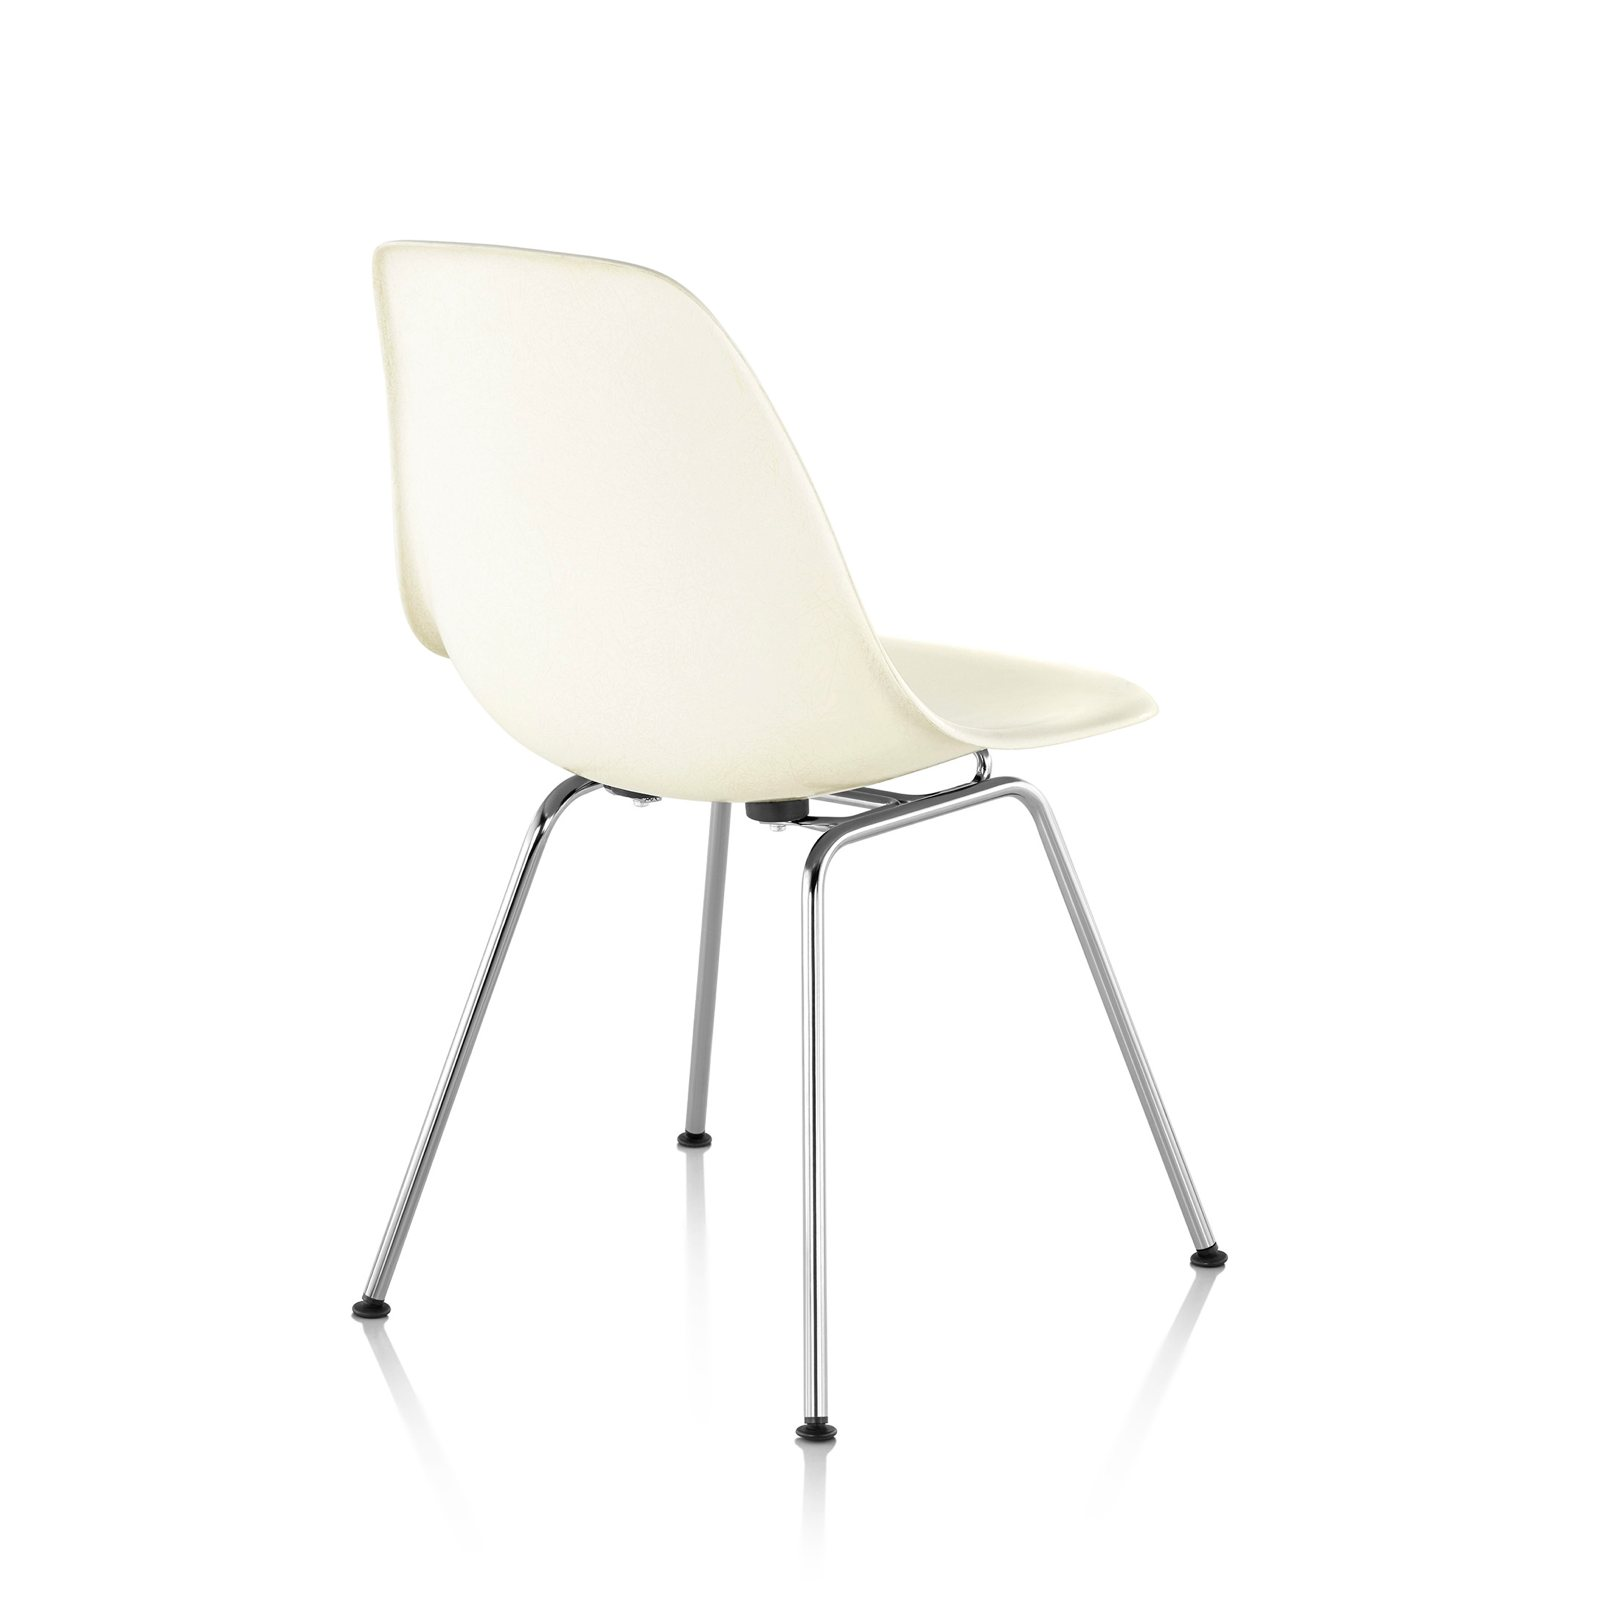 eames molded plastic side chair 4 leg base by charles. Black Bedroom Furniture Sets. Home Design Ideas